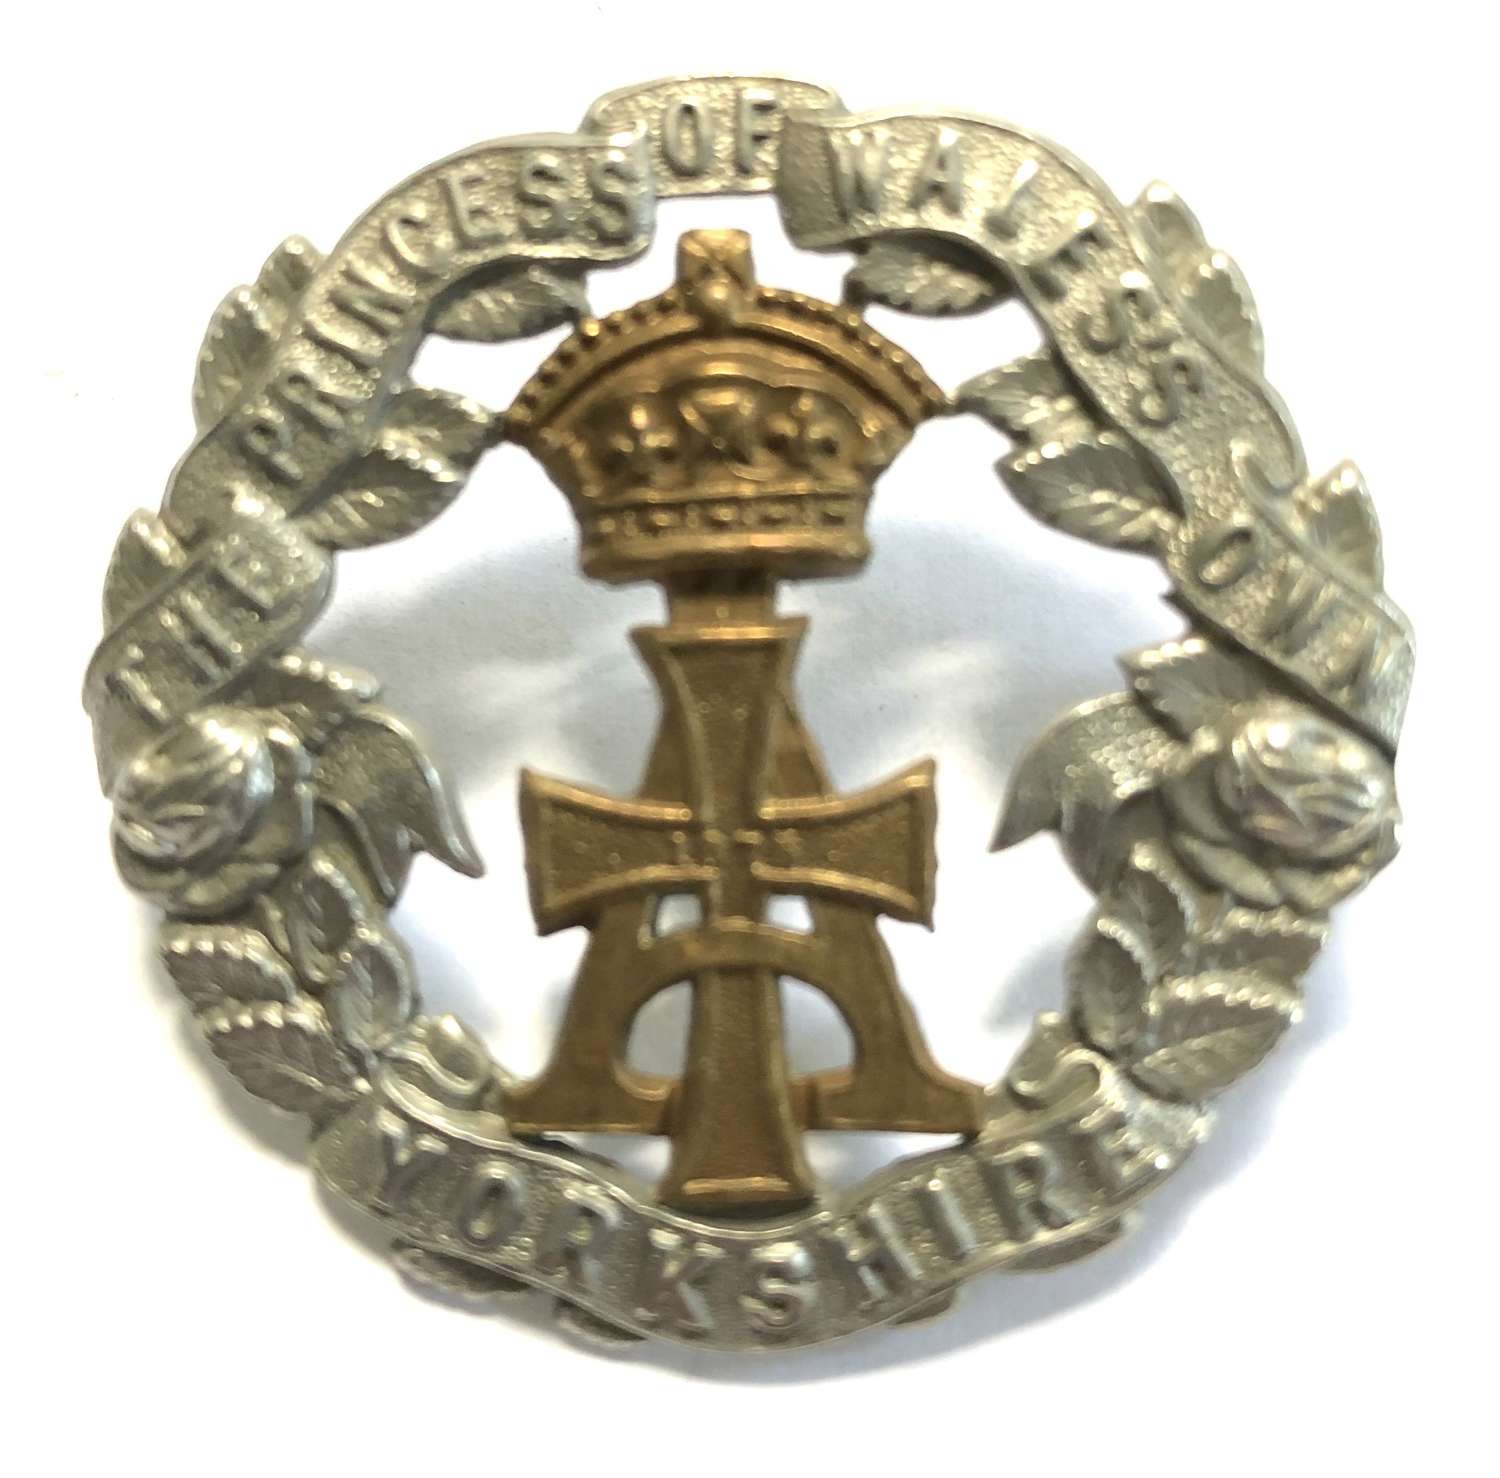 Yorkshire Regiment Victorian cap badge circa 1896-1908